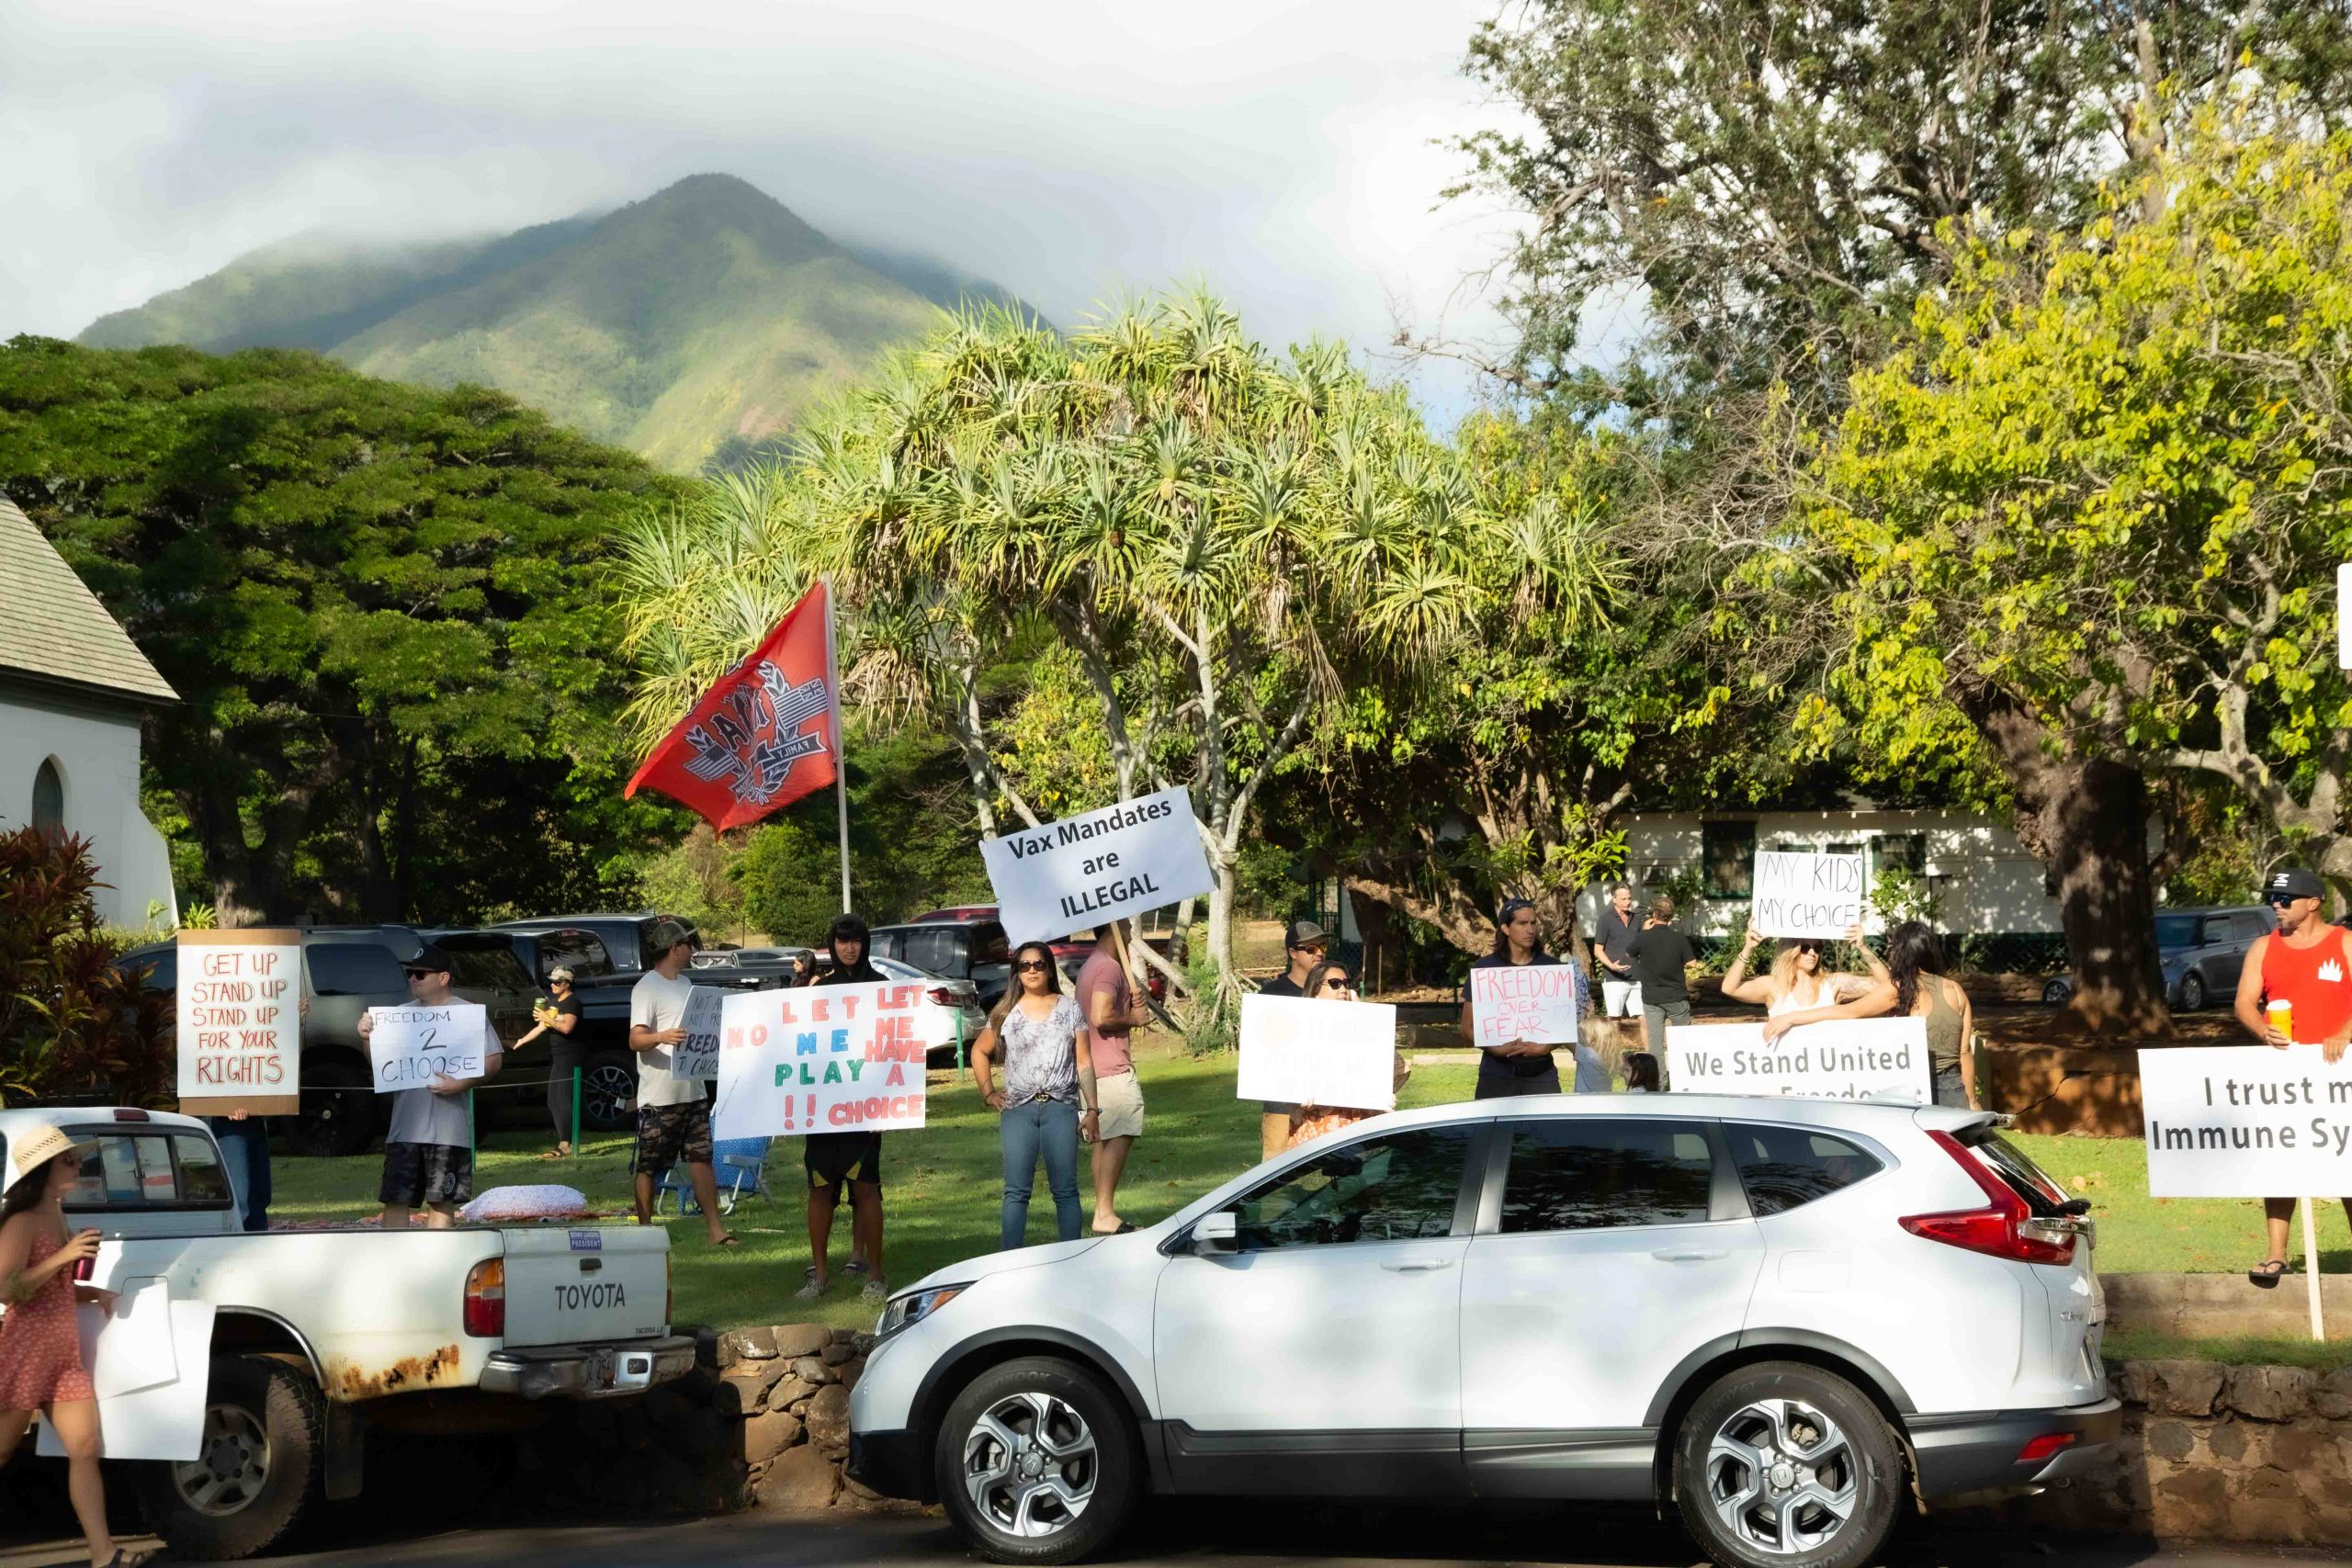 Latest Rally Continues to Advocate for Freedom Amid Masks and Vaccine Mandates